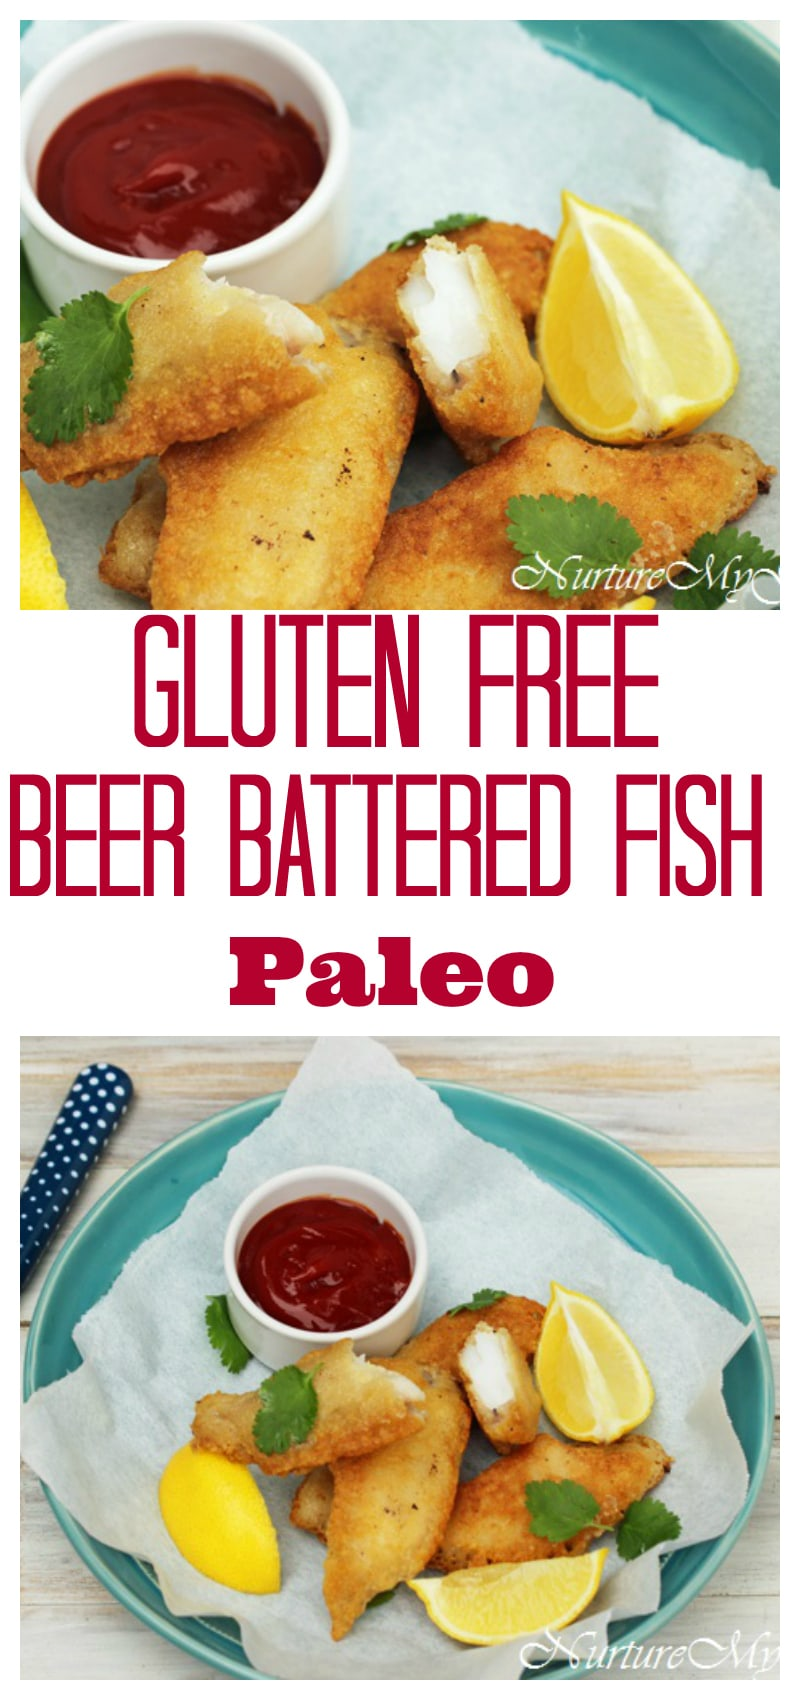 Gluten Free Beer Battered Fish Recipe